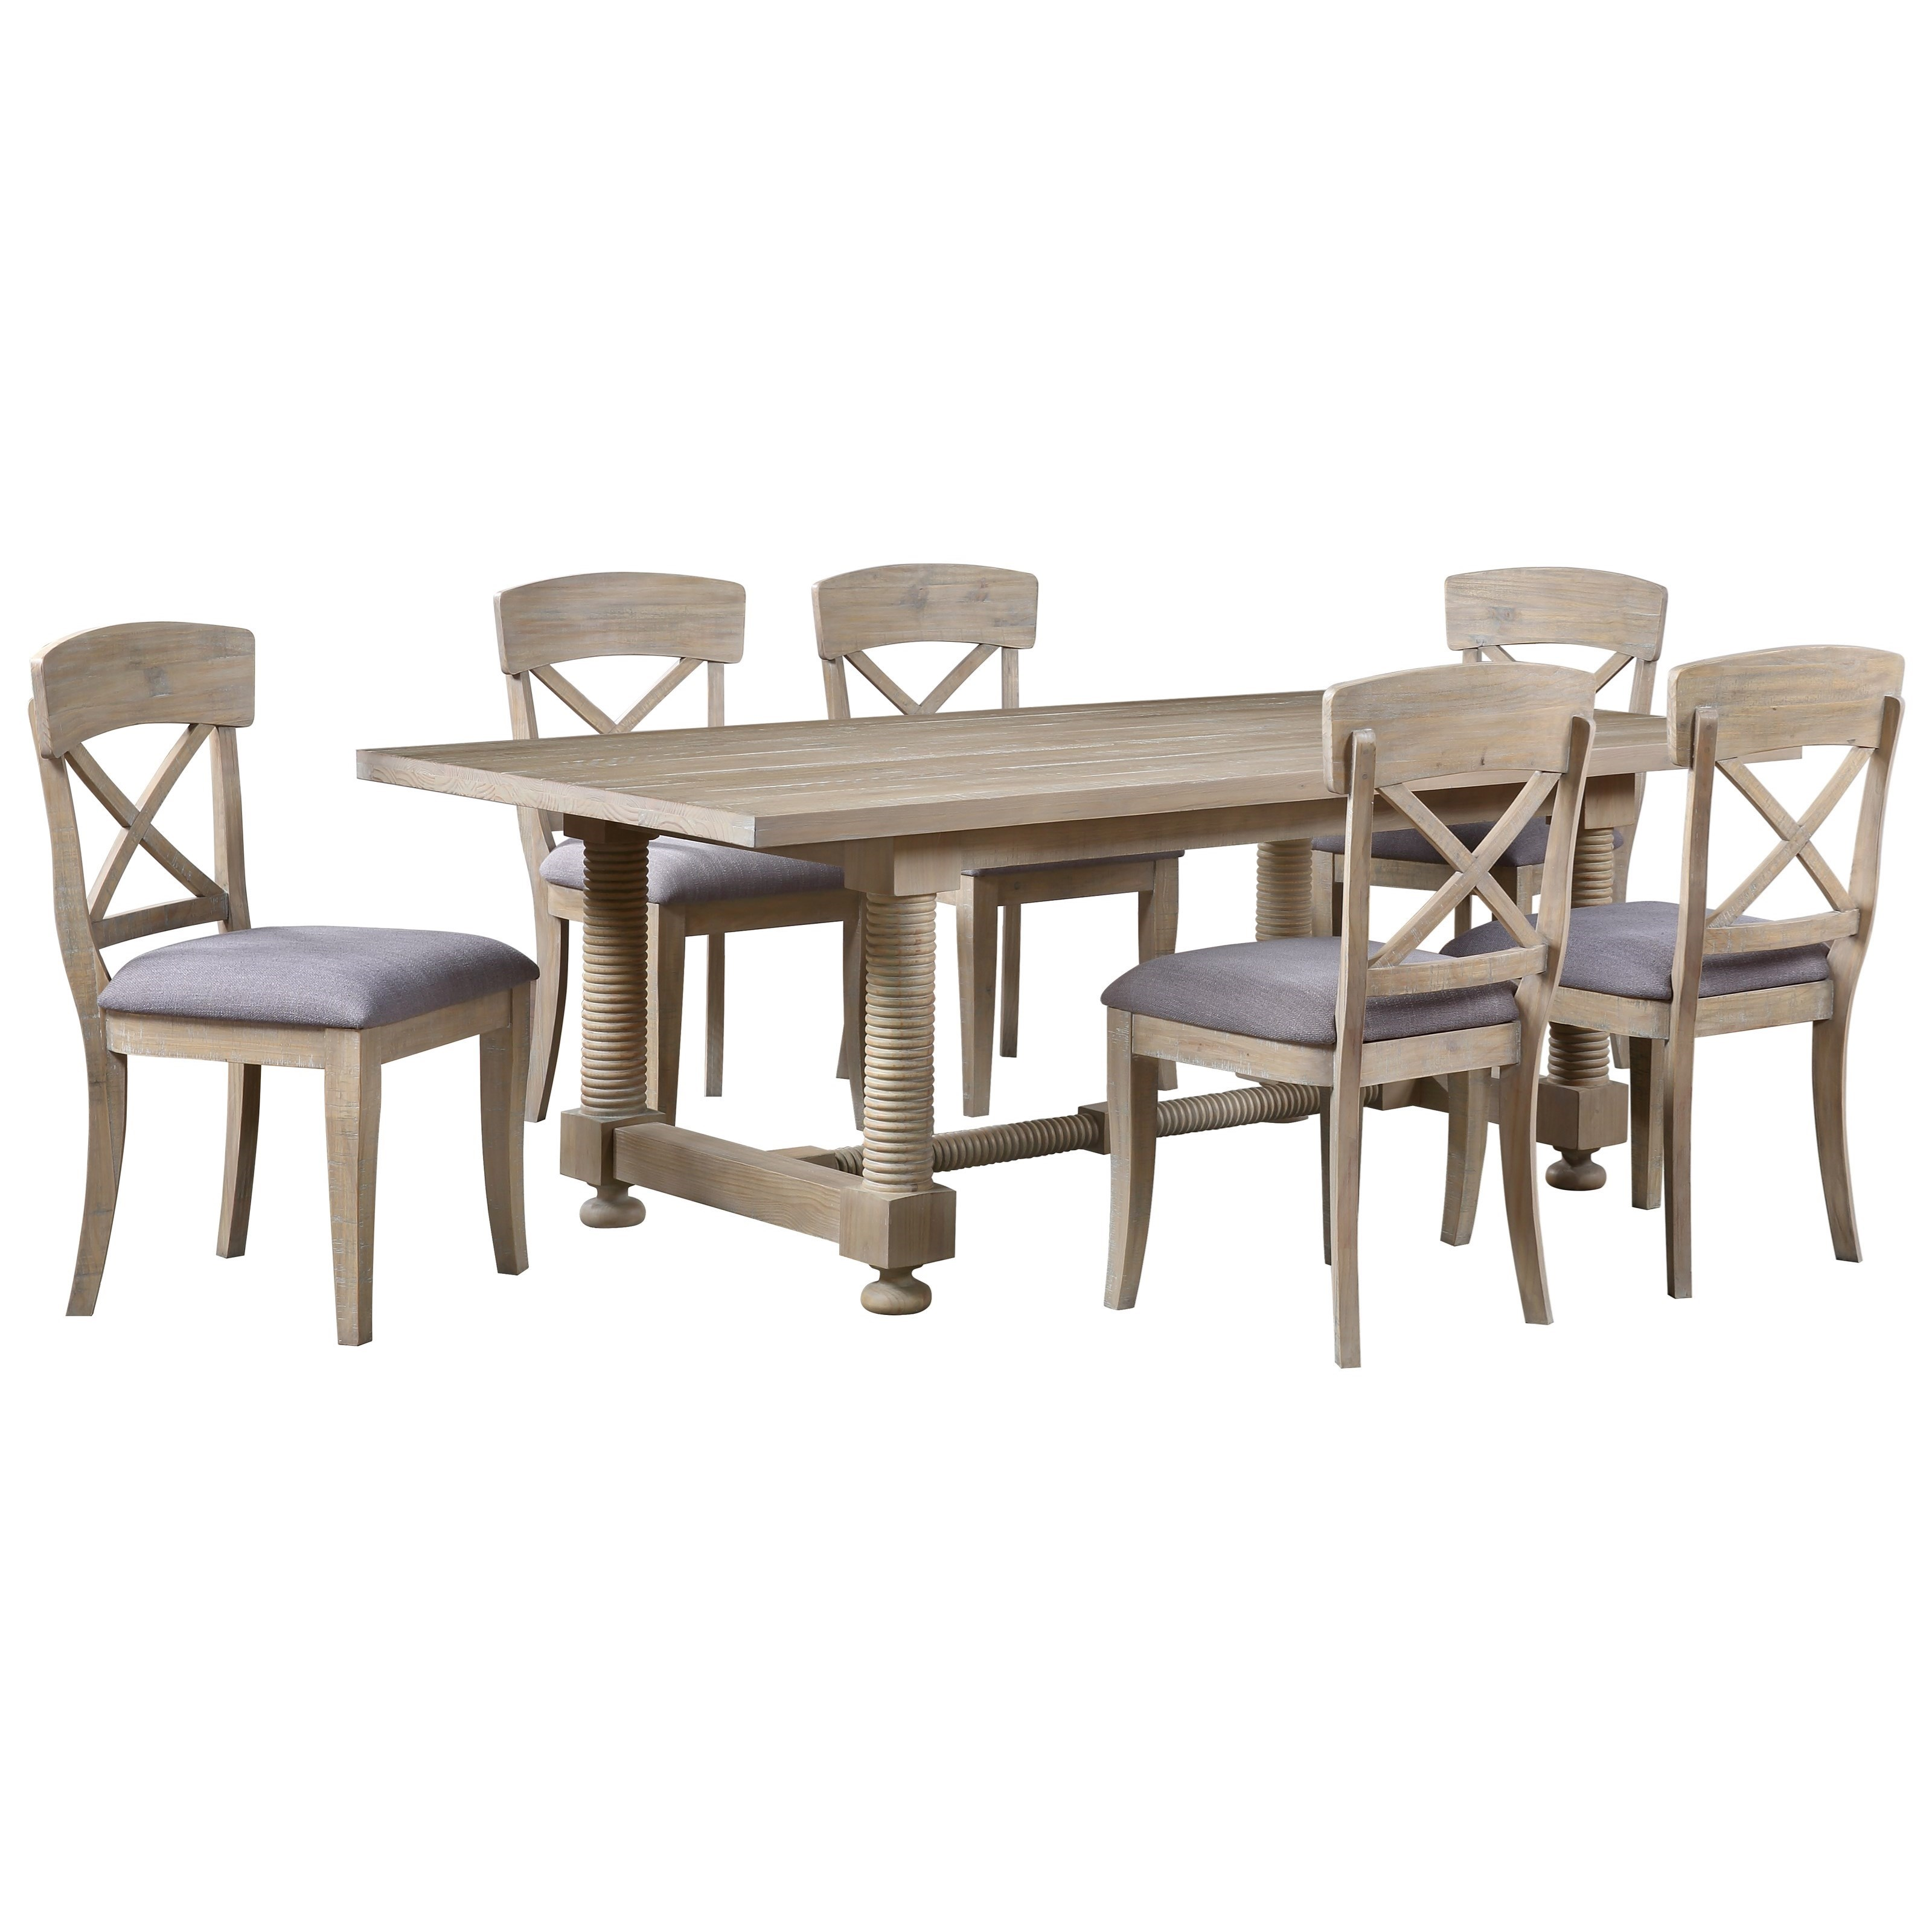 Barrister 7-Piece Table and Chair Set by Coast to Coast Imports at Zak's Home